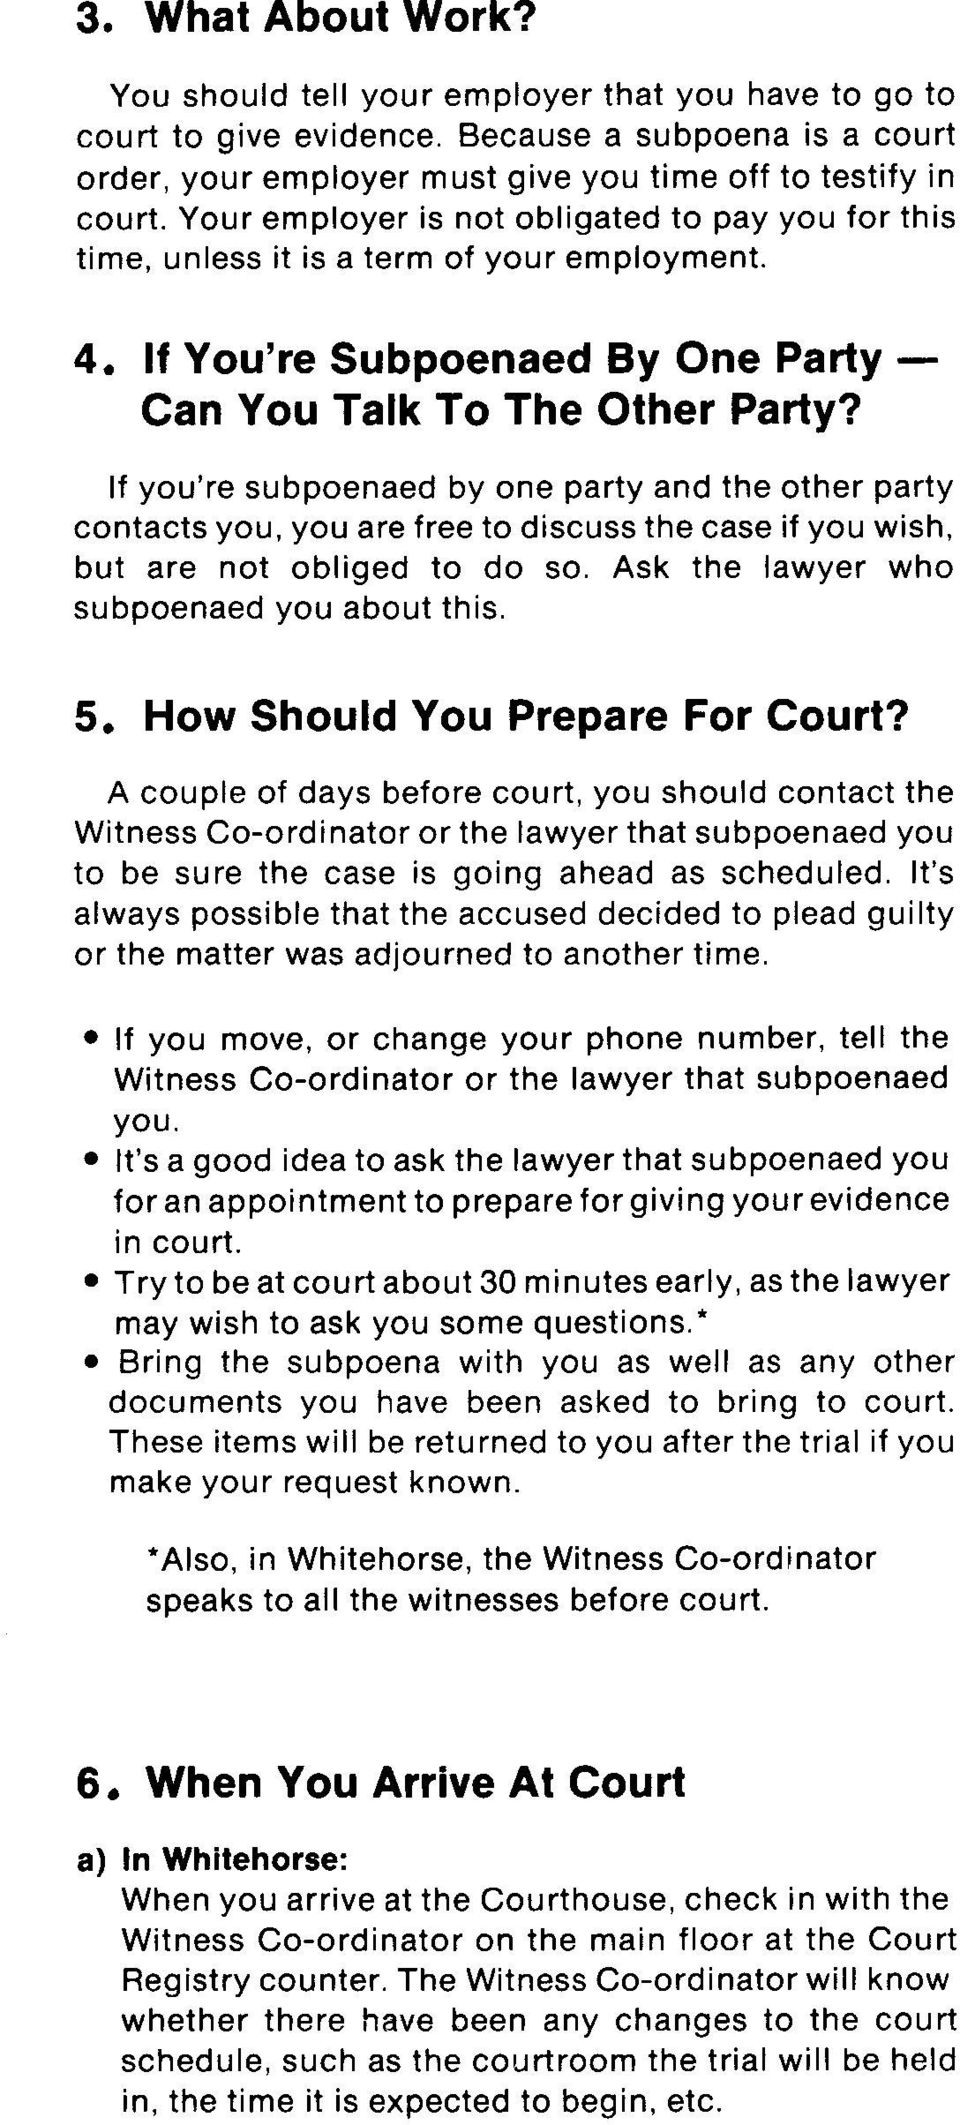 If you're subpoenaed by one party and the other party contacts you, you are free to discuss the case if you wish, but are not obliged to do so. Ask the lawyer who subpoenaed you about this. 5.